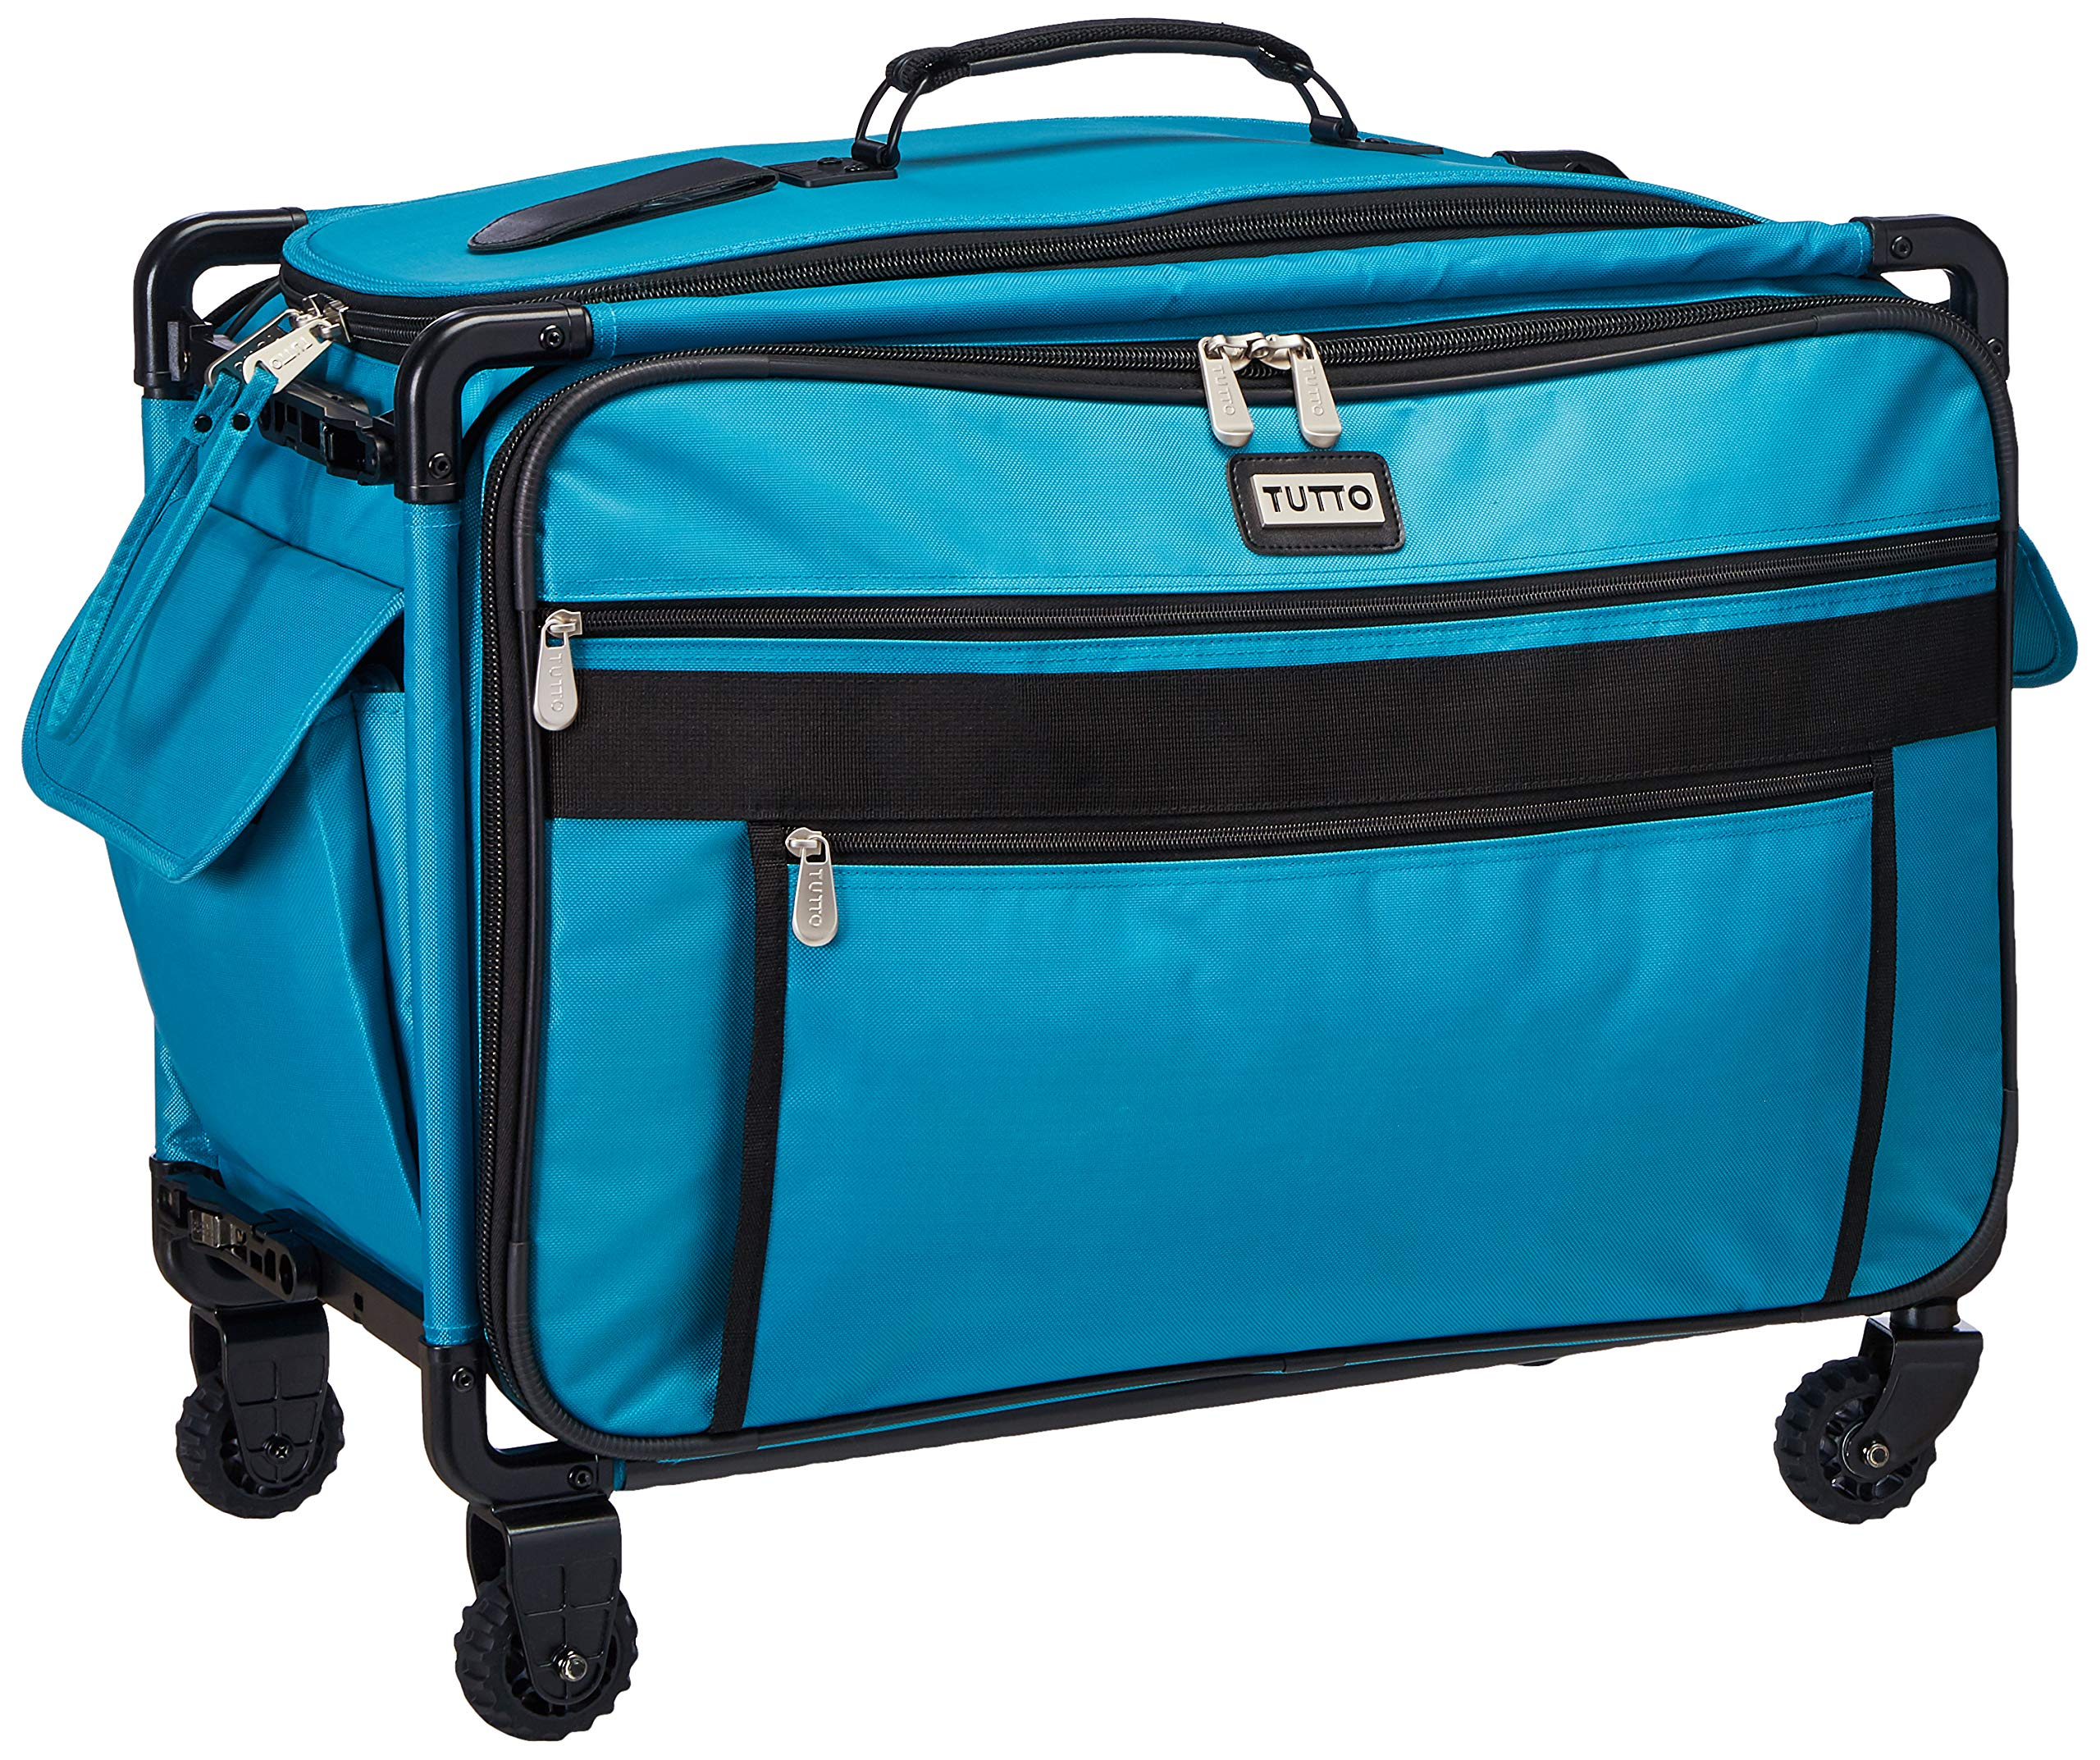 Tutto 9224TMA Turquoise Sewing Machine on Wheels Case, 25 by 18.5 by 13, by Tutto